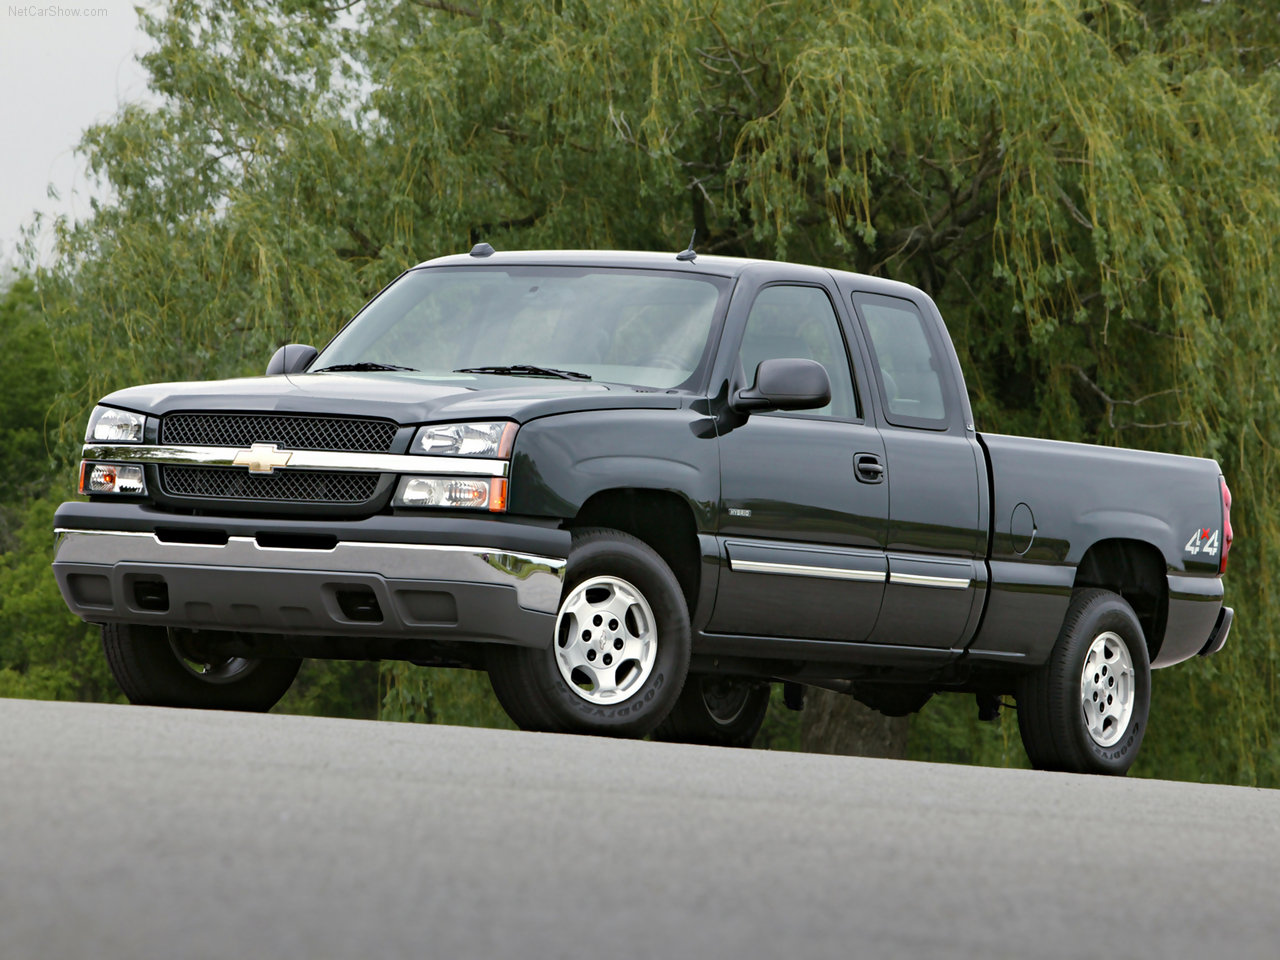 Ranking All The Chevrolet Half Ton Trucks Based On Styling